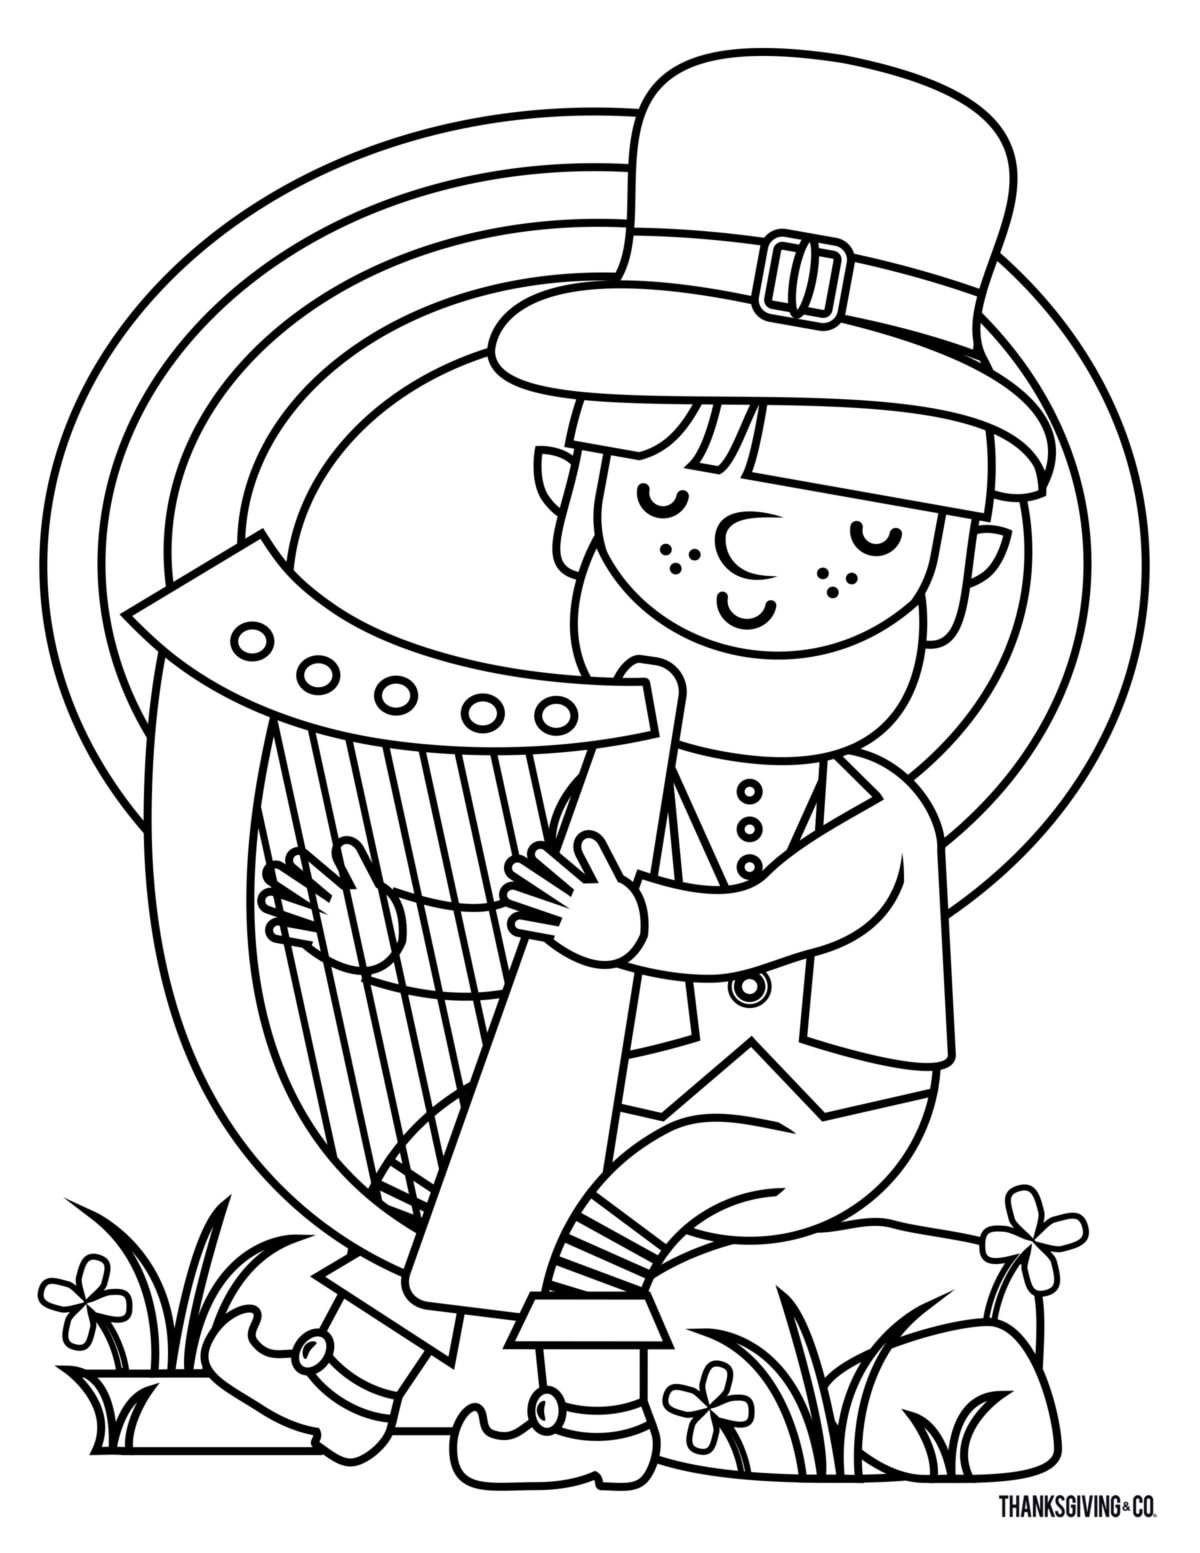 St.Patricks Day Coloring Book - Leprechaun playing a Celtic harp